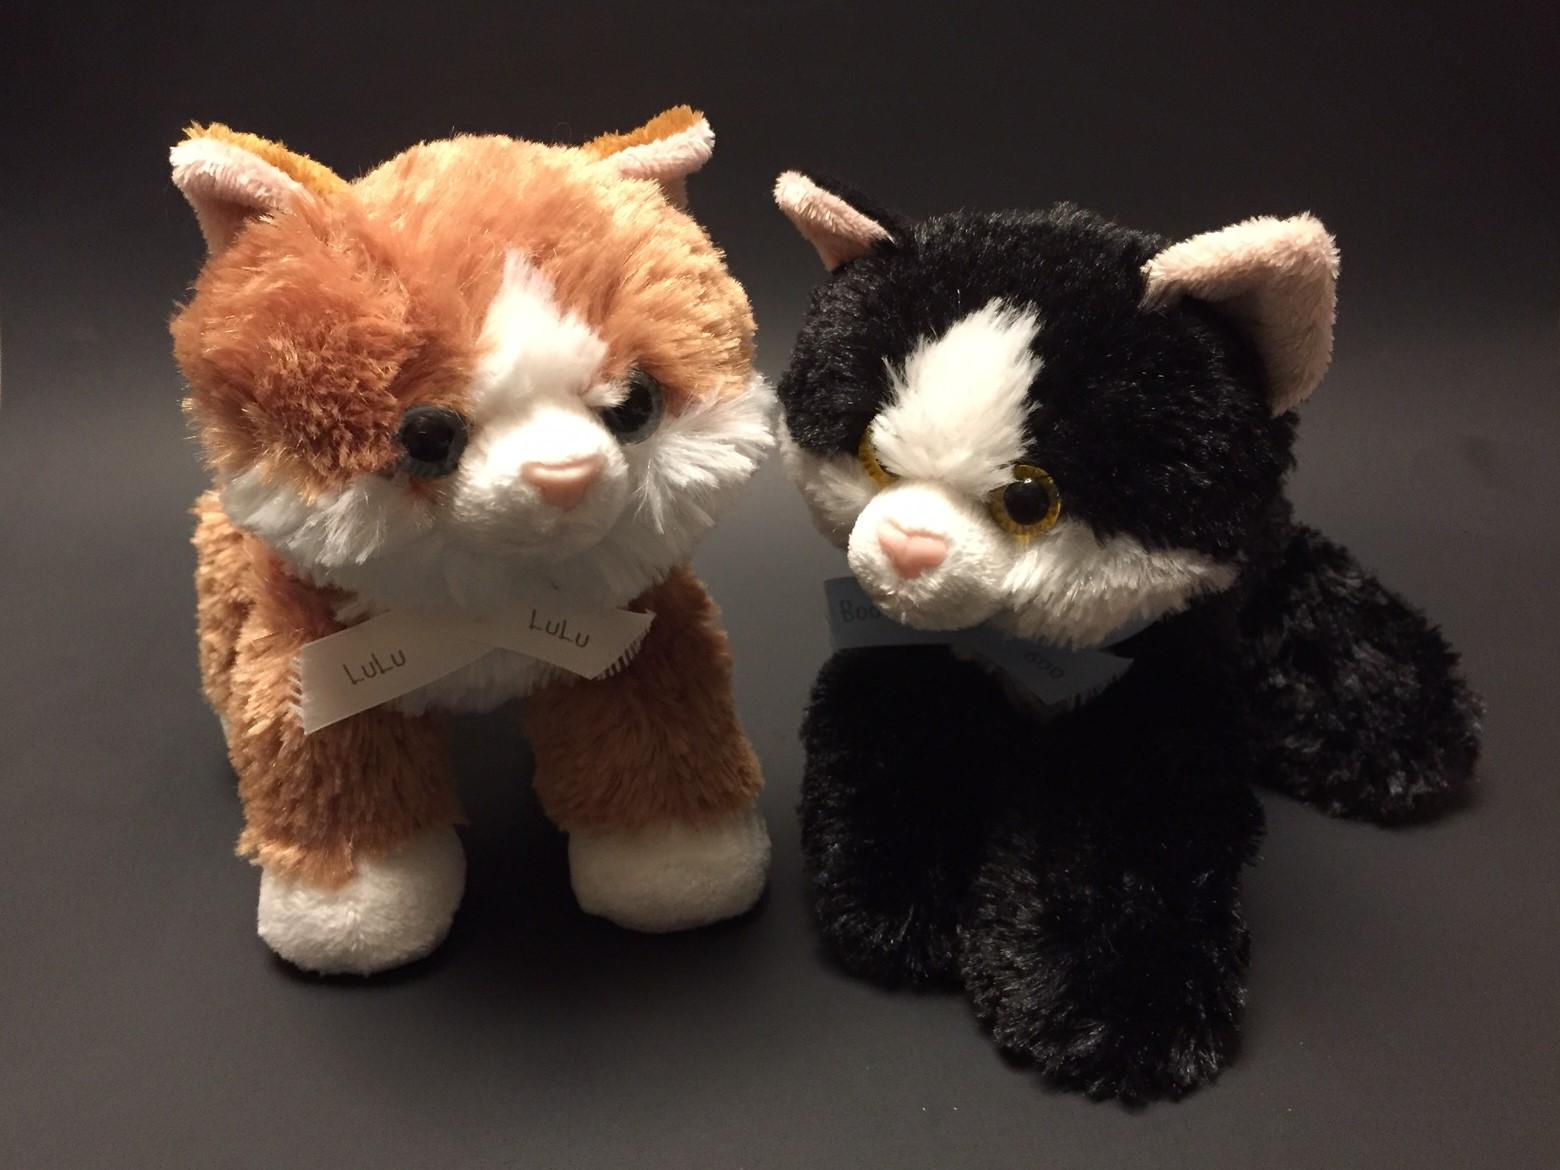 Lulu and Boo – Plush Characters